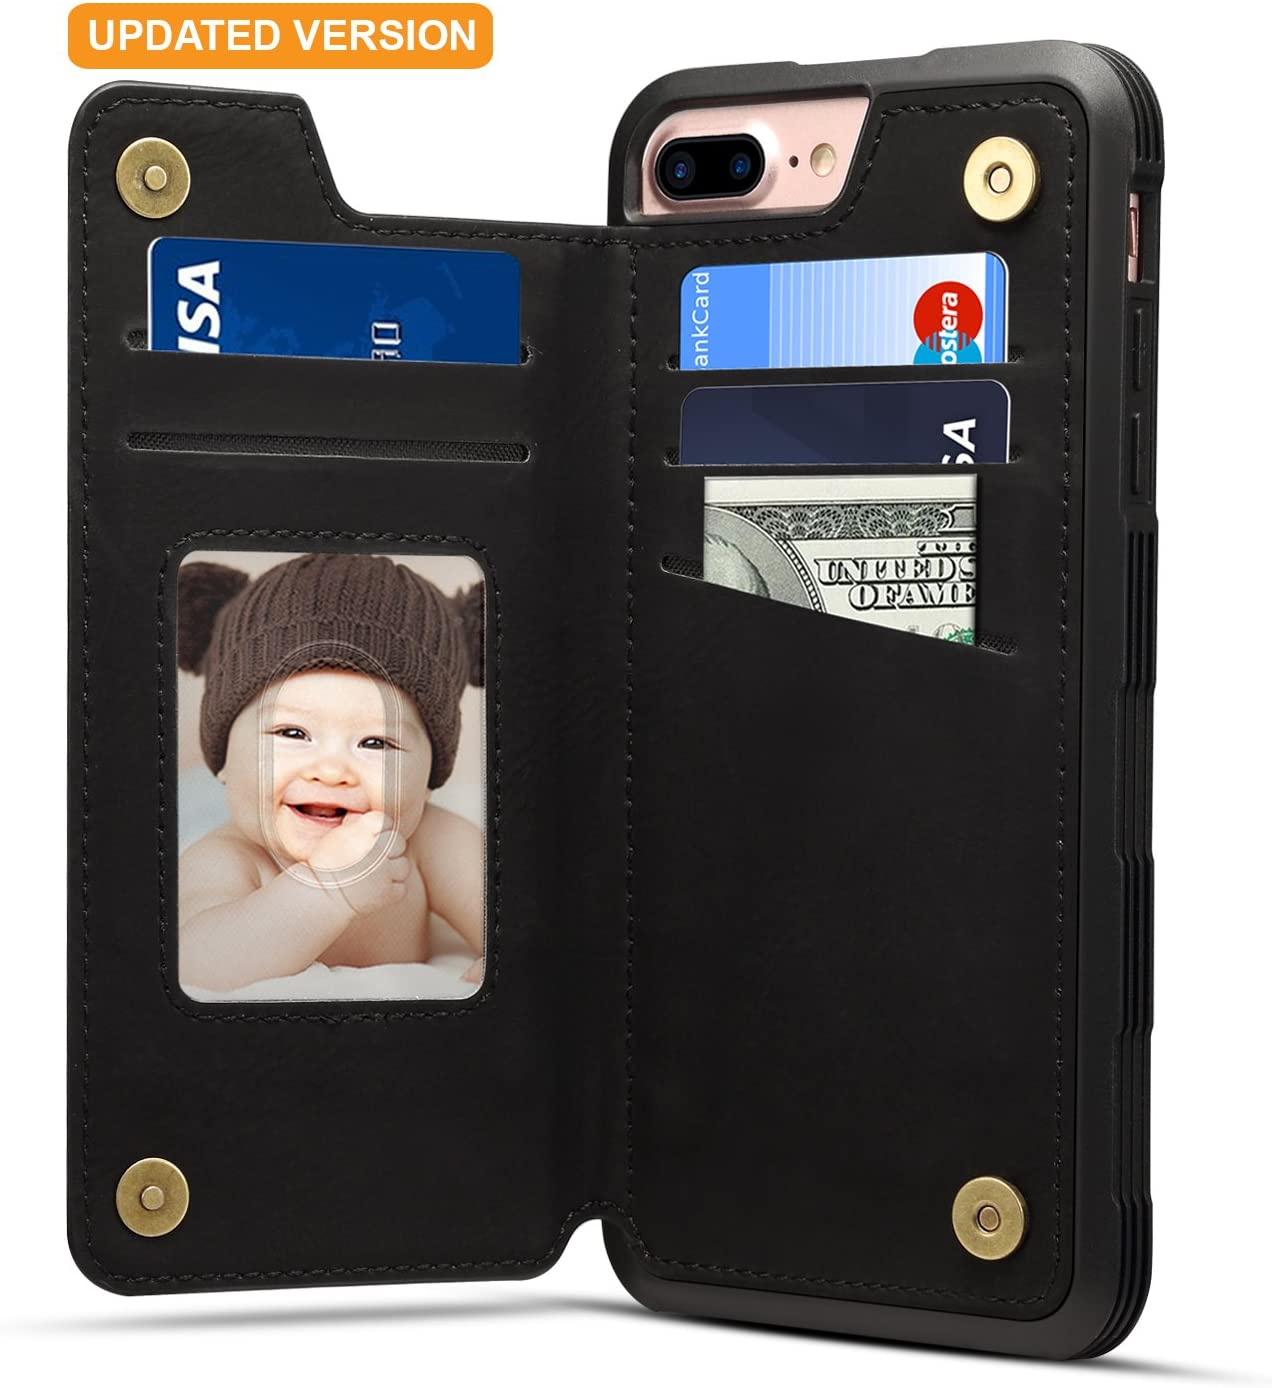 iPhone 8 Plus Card Holder Case iPhone 8 Plus Wallet Case Slim iPhone 8 Plus Folio Leather case cover Shockproof Case with Credit Card Slot Protective Case for iPhone 8 Plus and iPhone 7 Plus (Black)